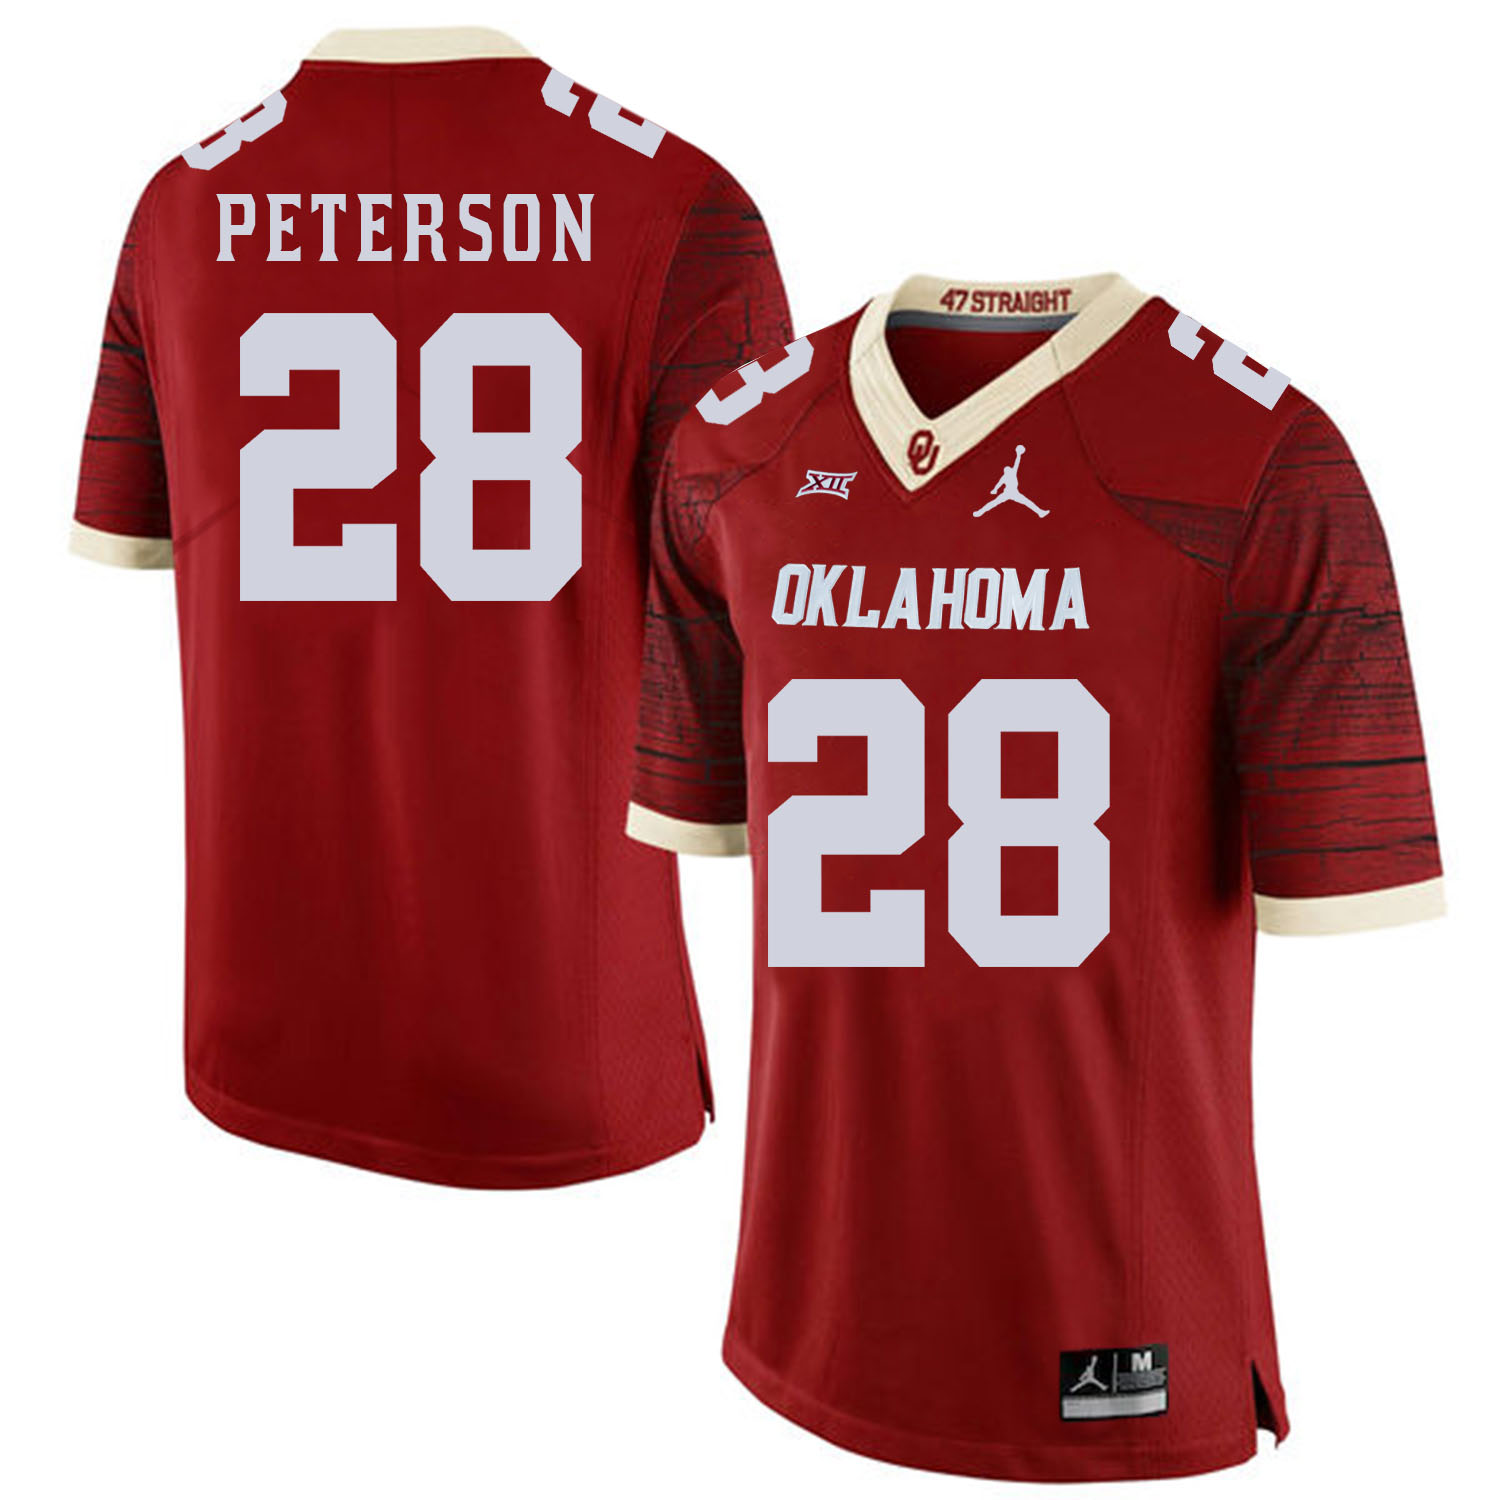 Oklahoma Sooners 28 Adrian Peterson Red 47 Game Winning Streak College Football Jersey